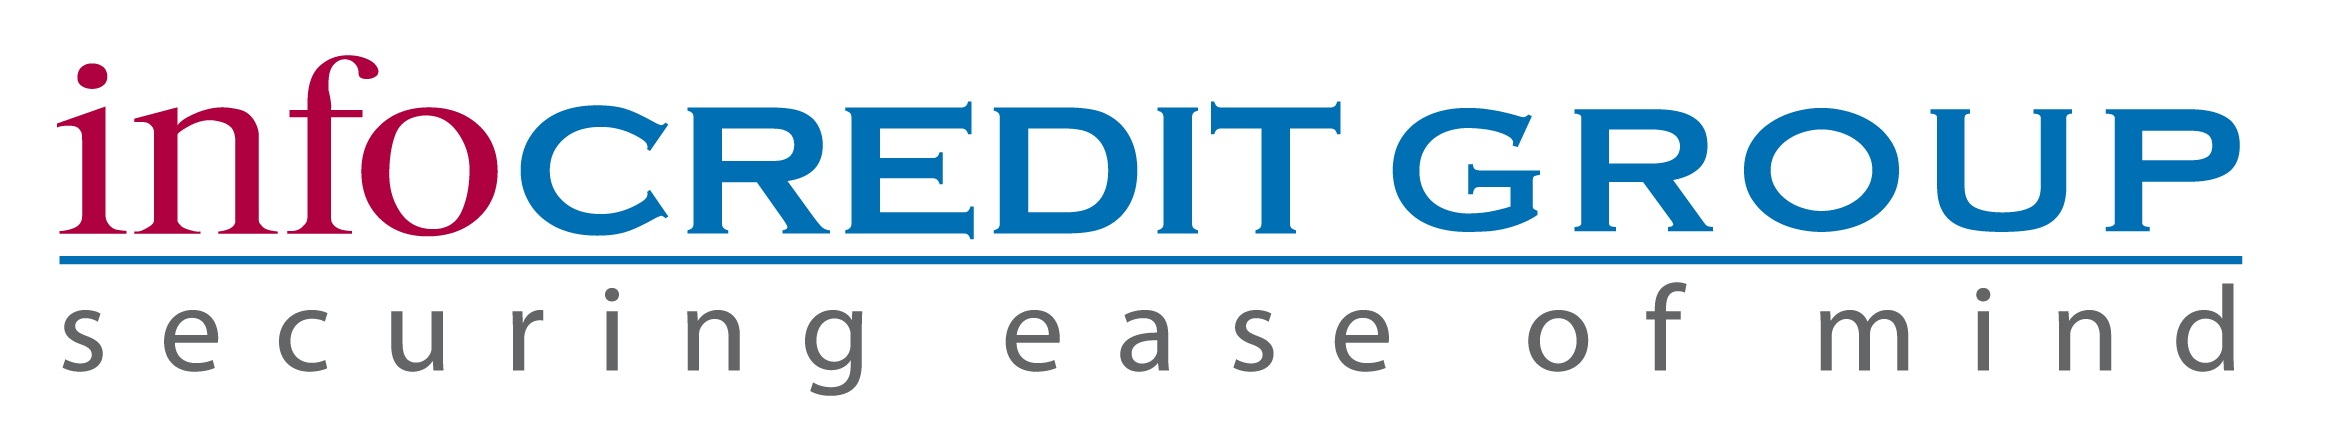 Infocredit Group Ltd